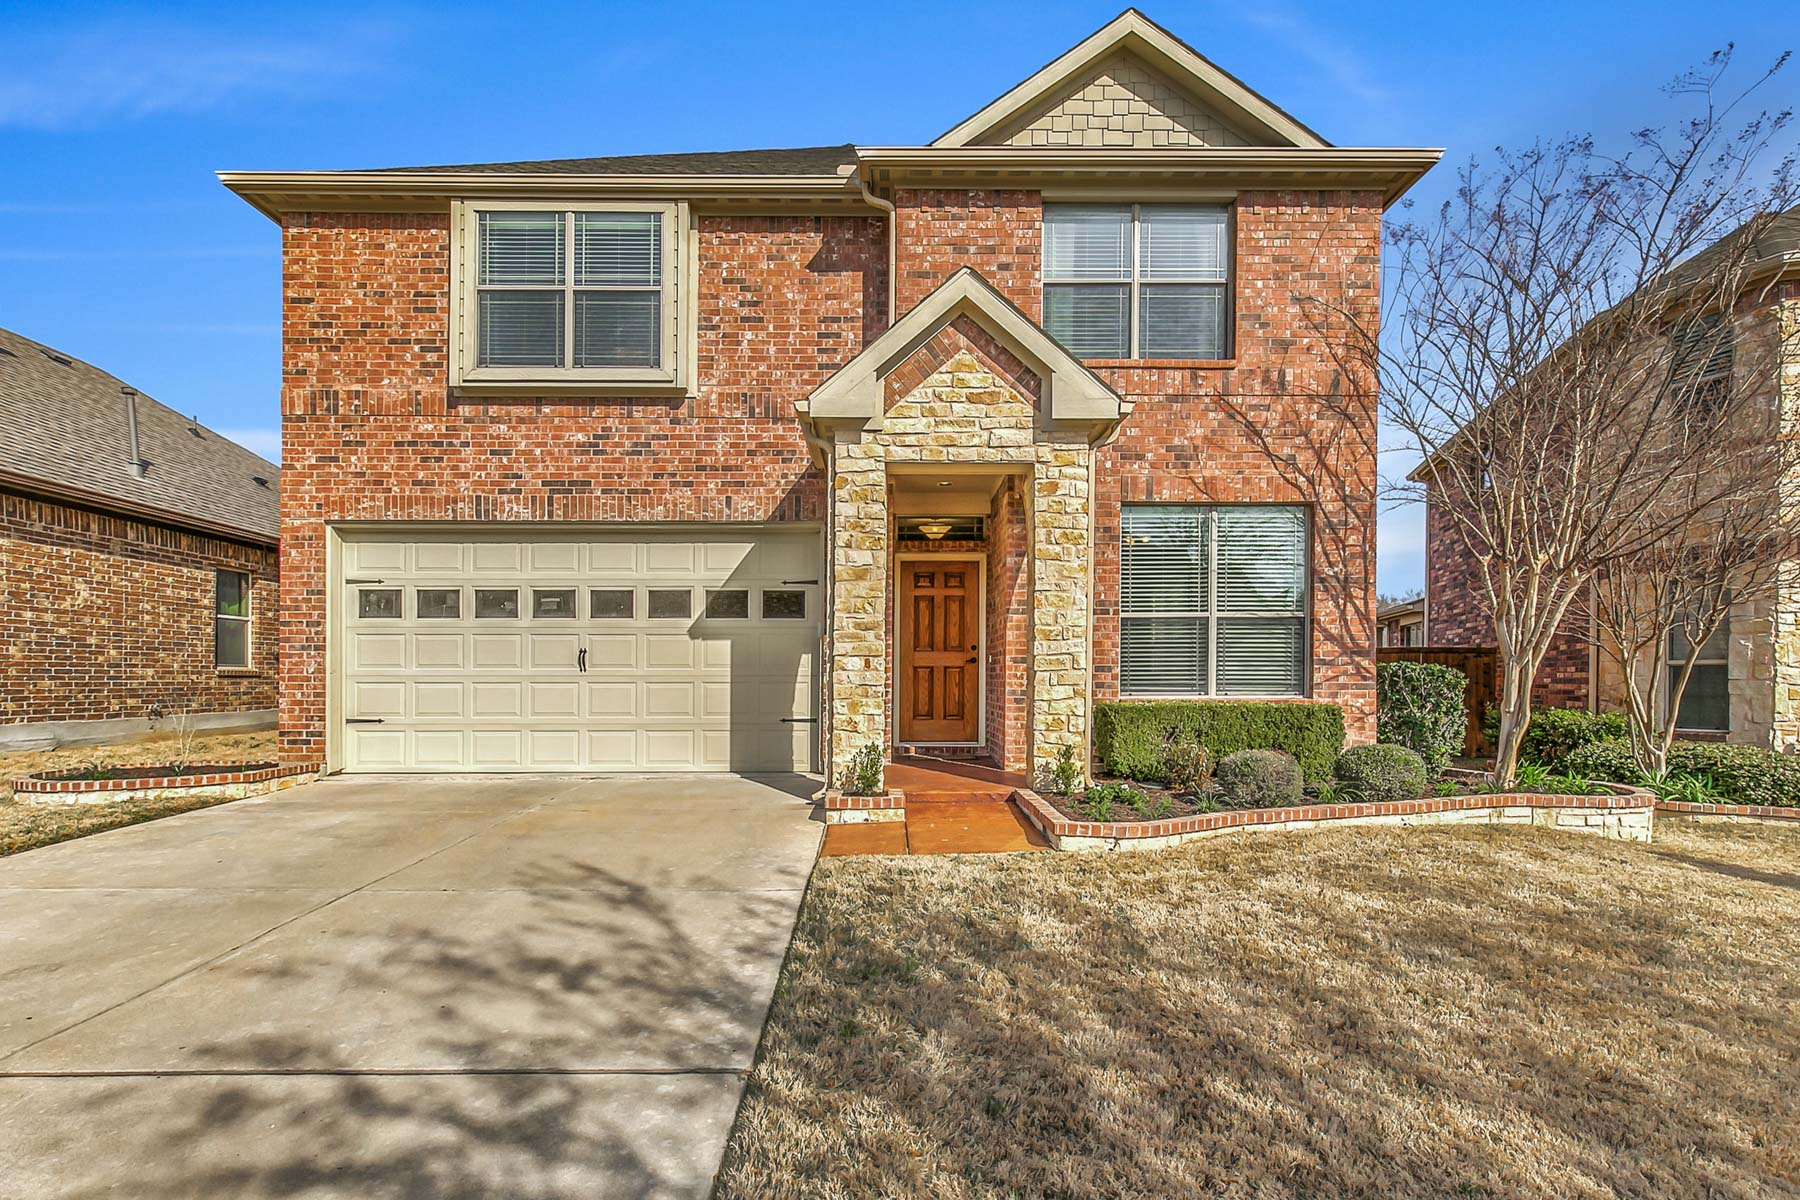 Single Family Home for Sale at 3825 Weatherstone Dr. 3825 Weatherstone Drive, Fort Worth, Texas, 76137 United States